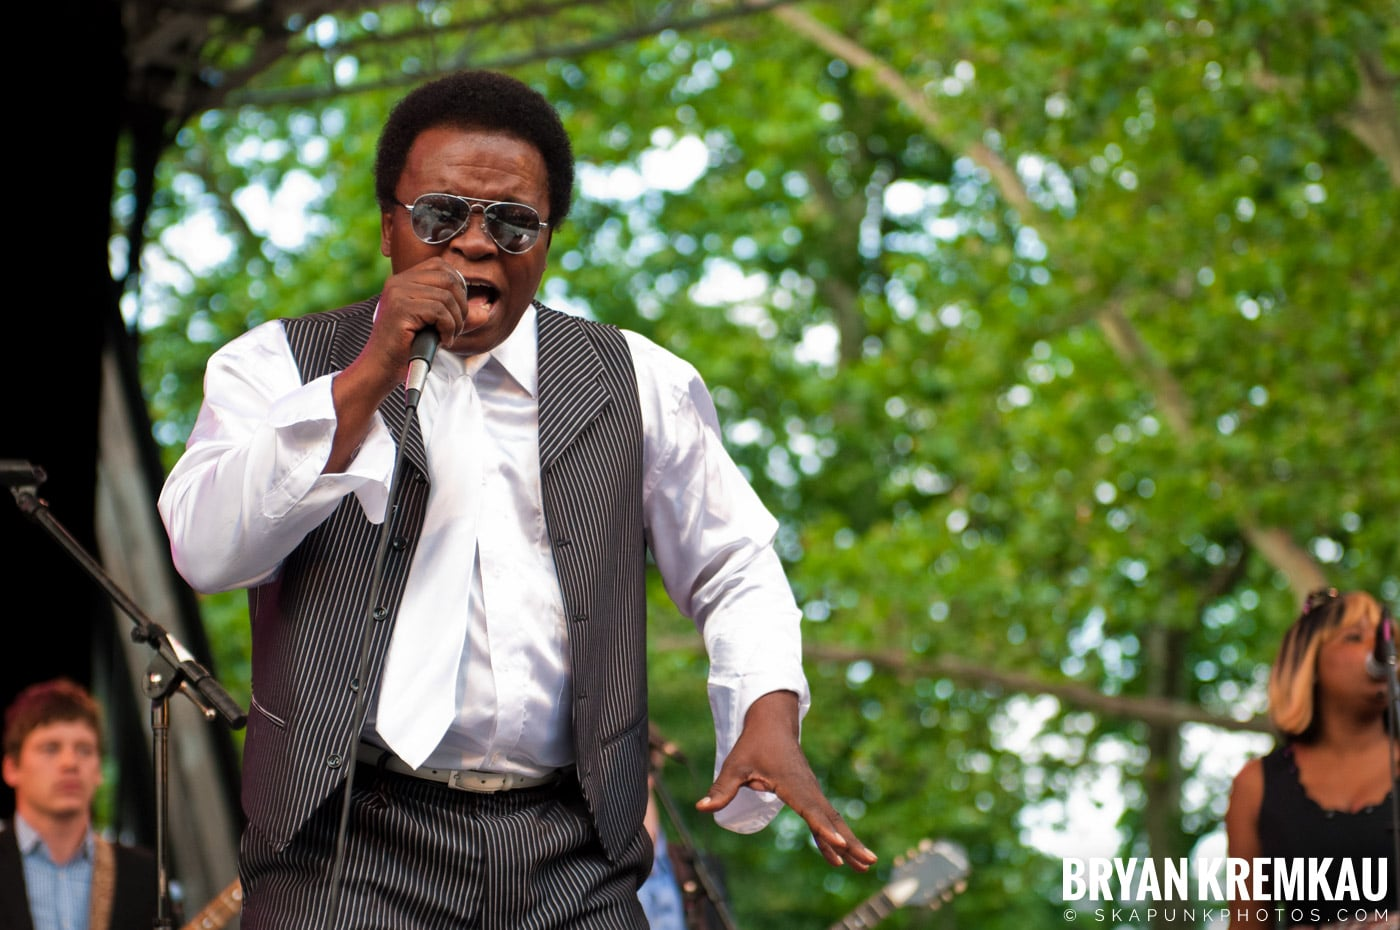 Lee Fields & The Expressions @ Central Park SummerStage, NYC - 6.24.11 (17)